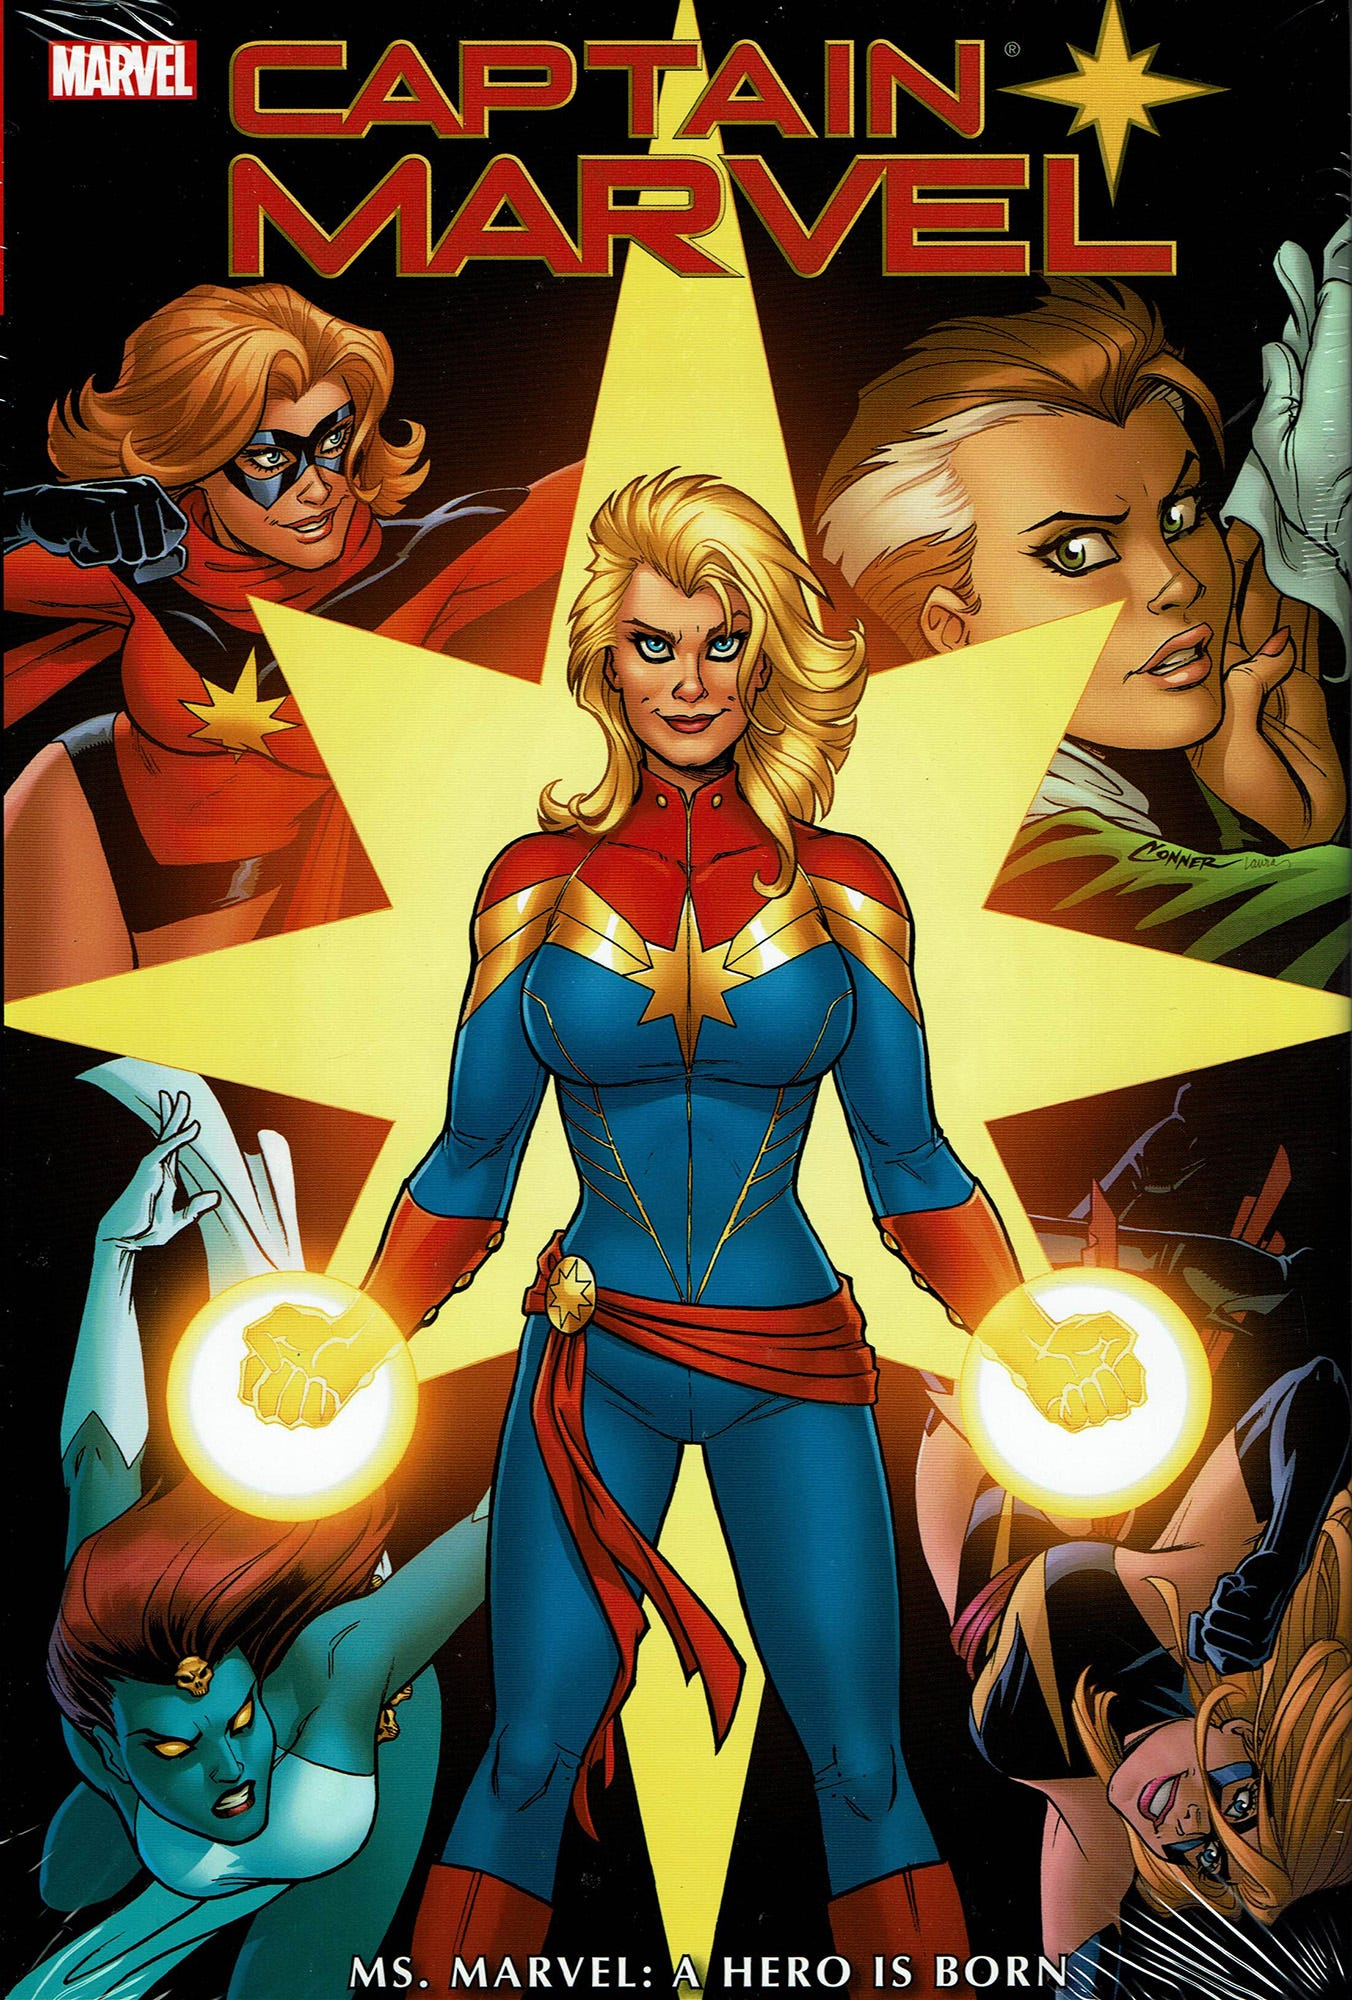 Captain Comics The Many Iterations Of Captain Marvel Marvel got a kicky new black costume and lost her powers and memories while another character, monica rambeau—able to turn into any. the many iterations of captain marvel